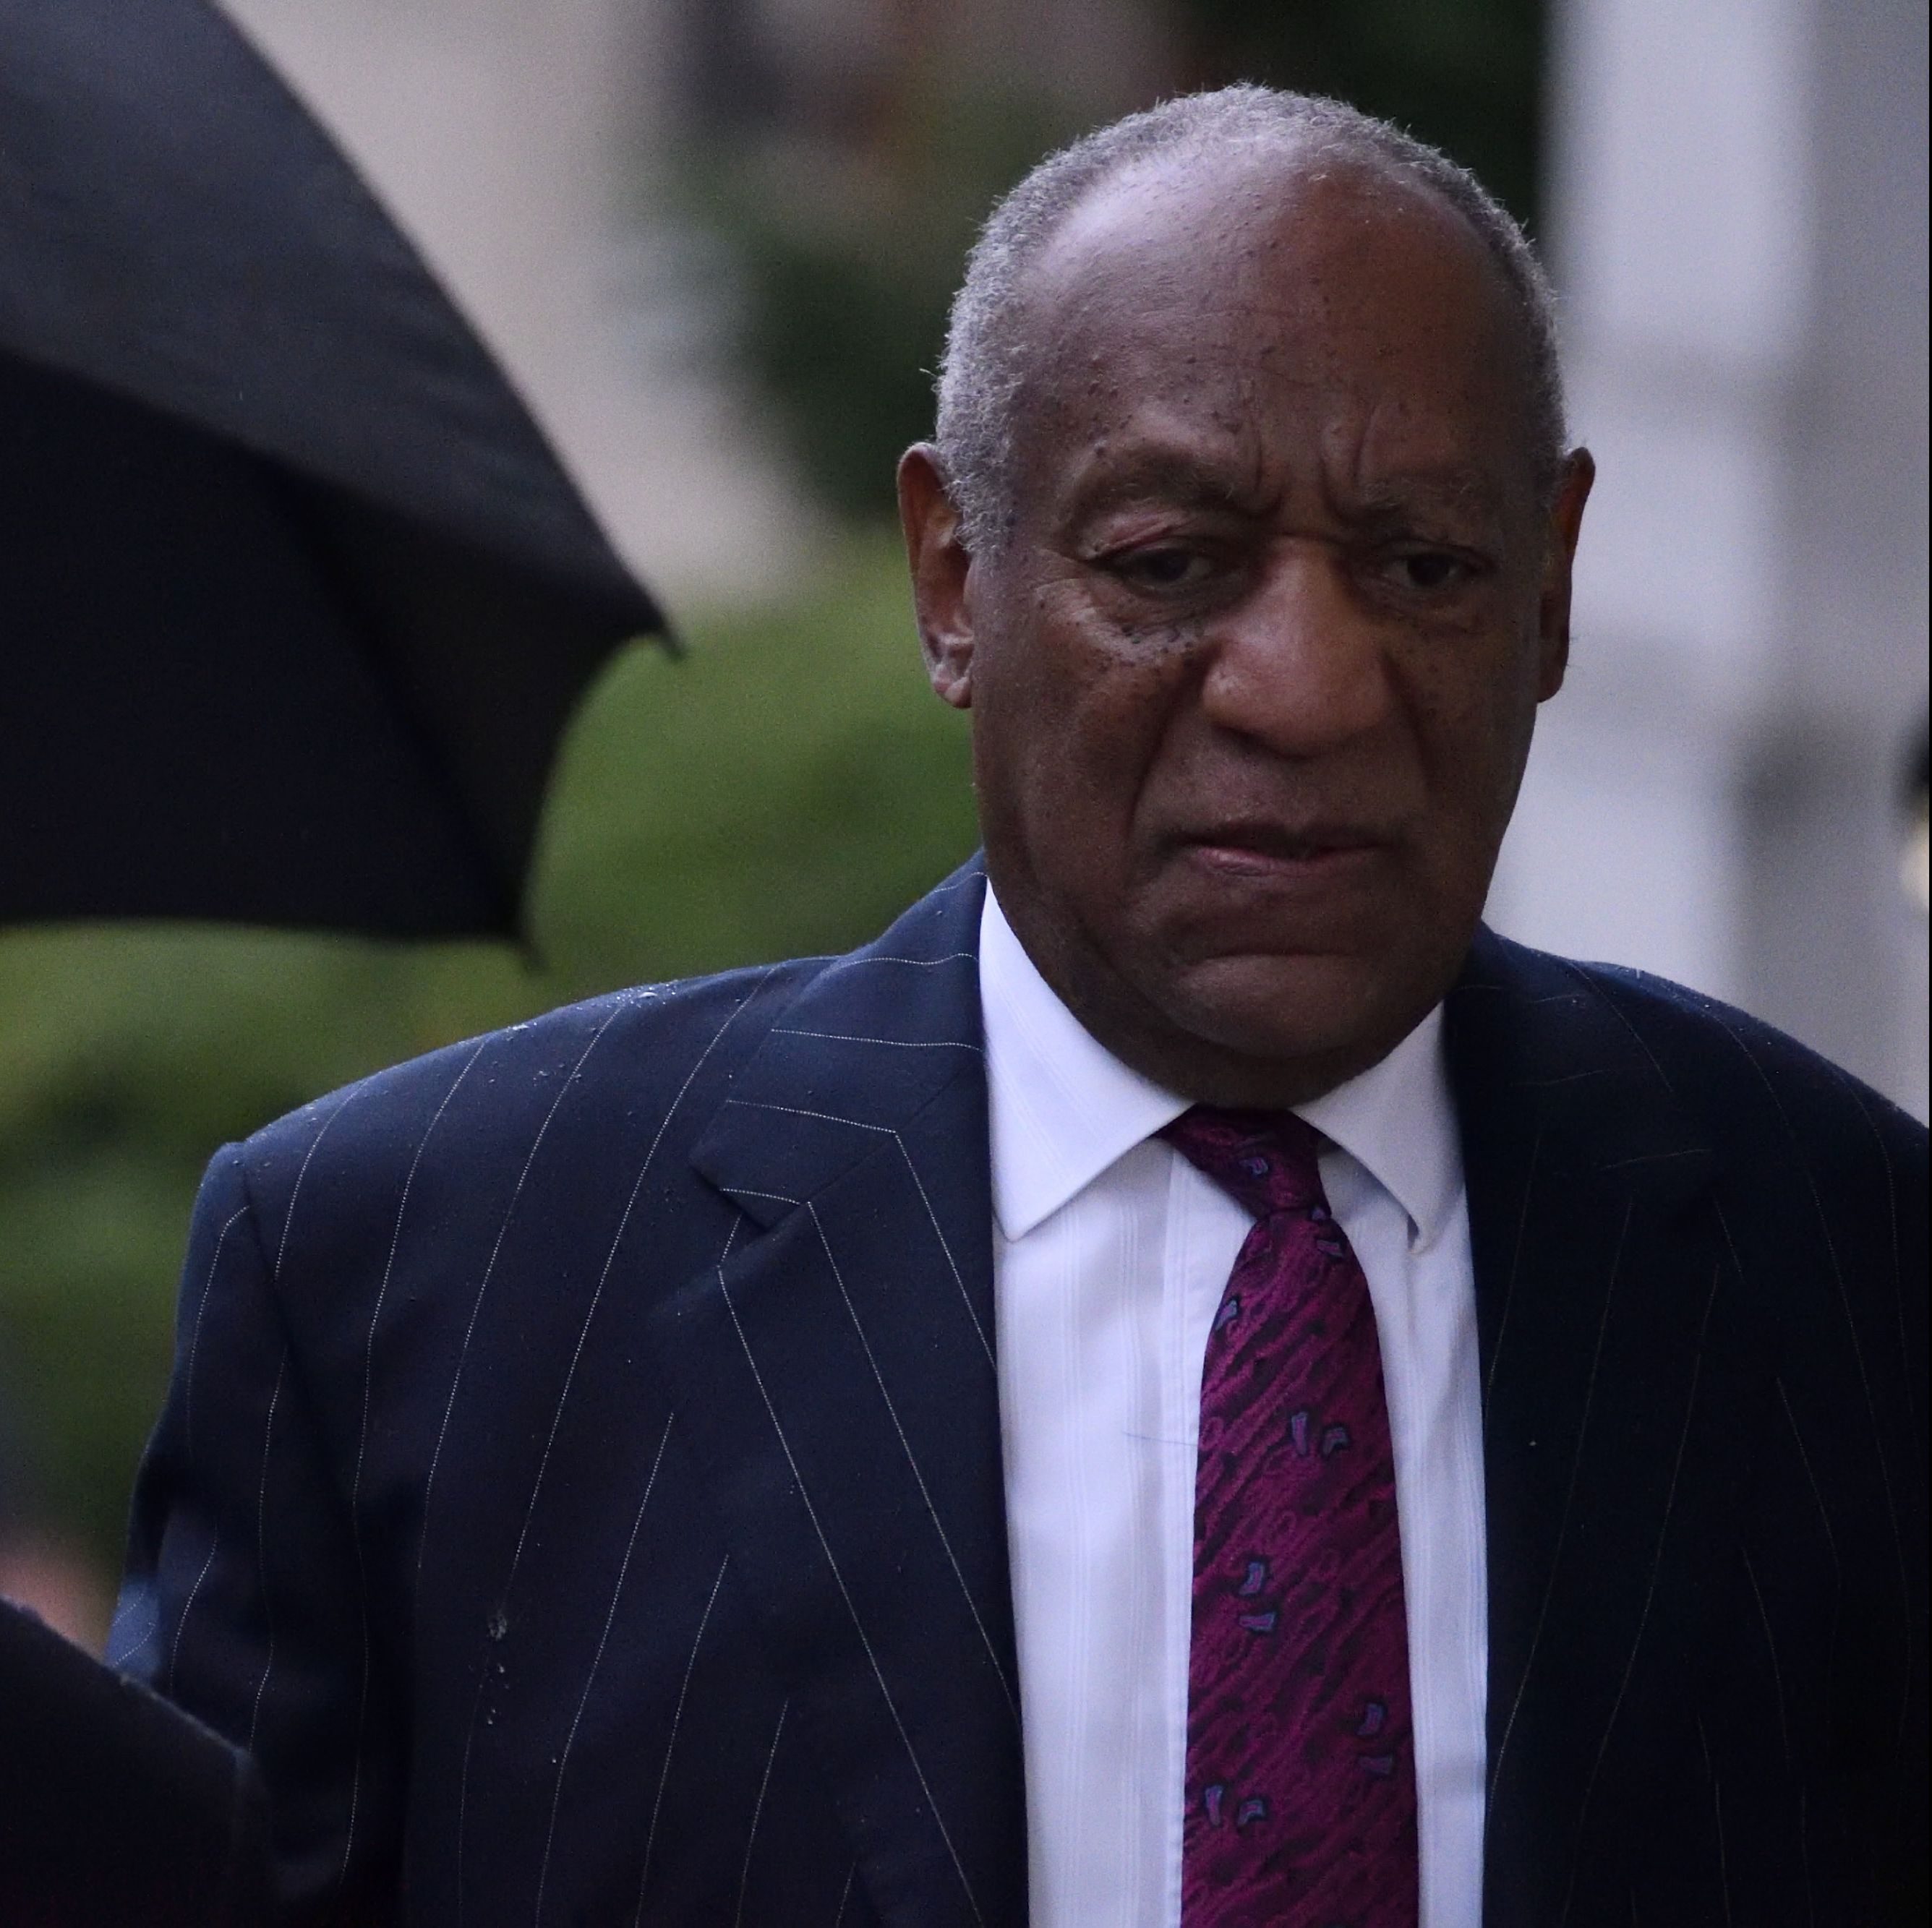 Bill Cosby sentenced to 3-10 years